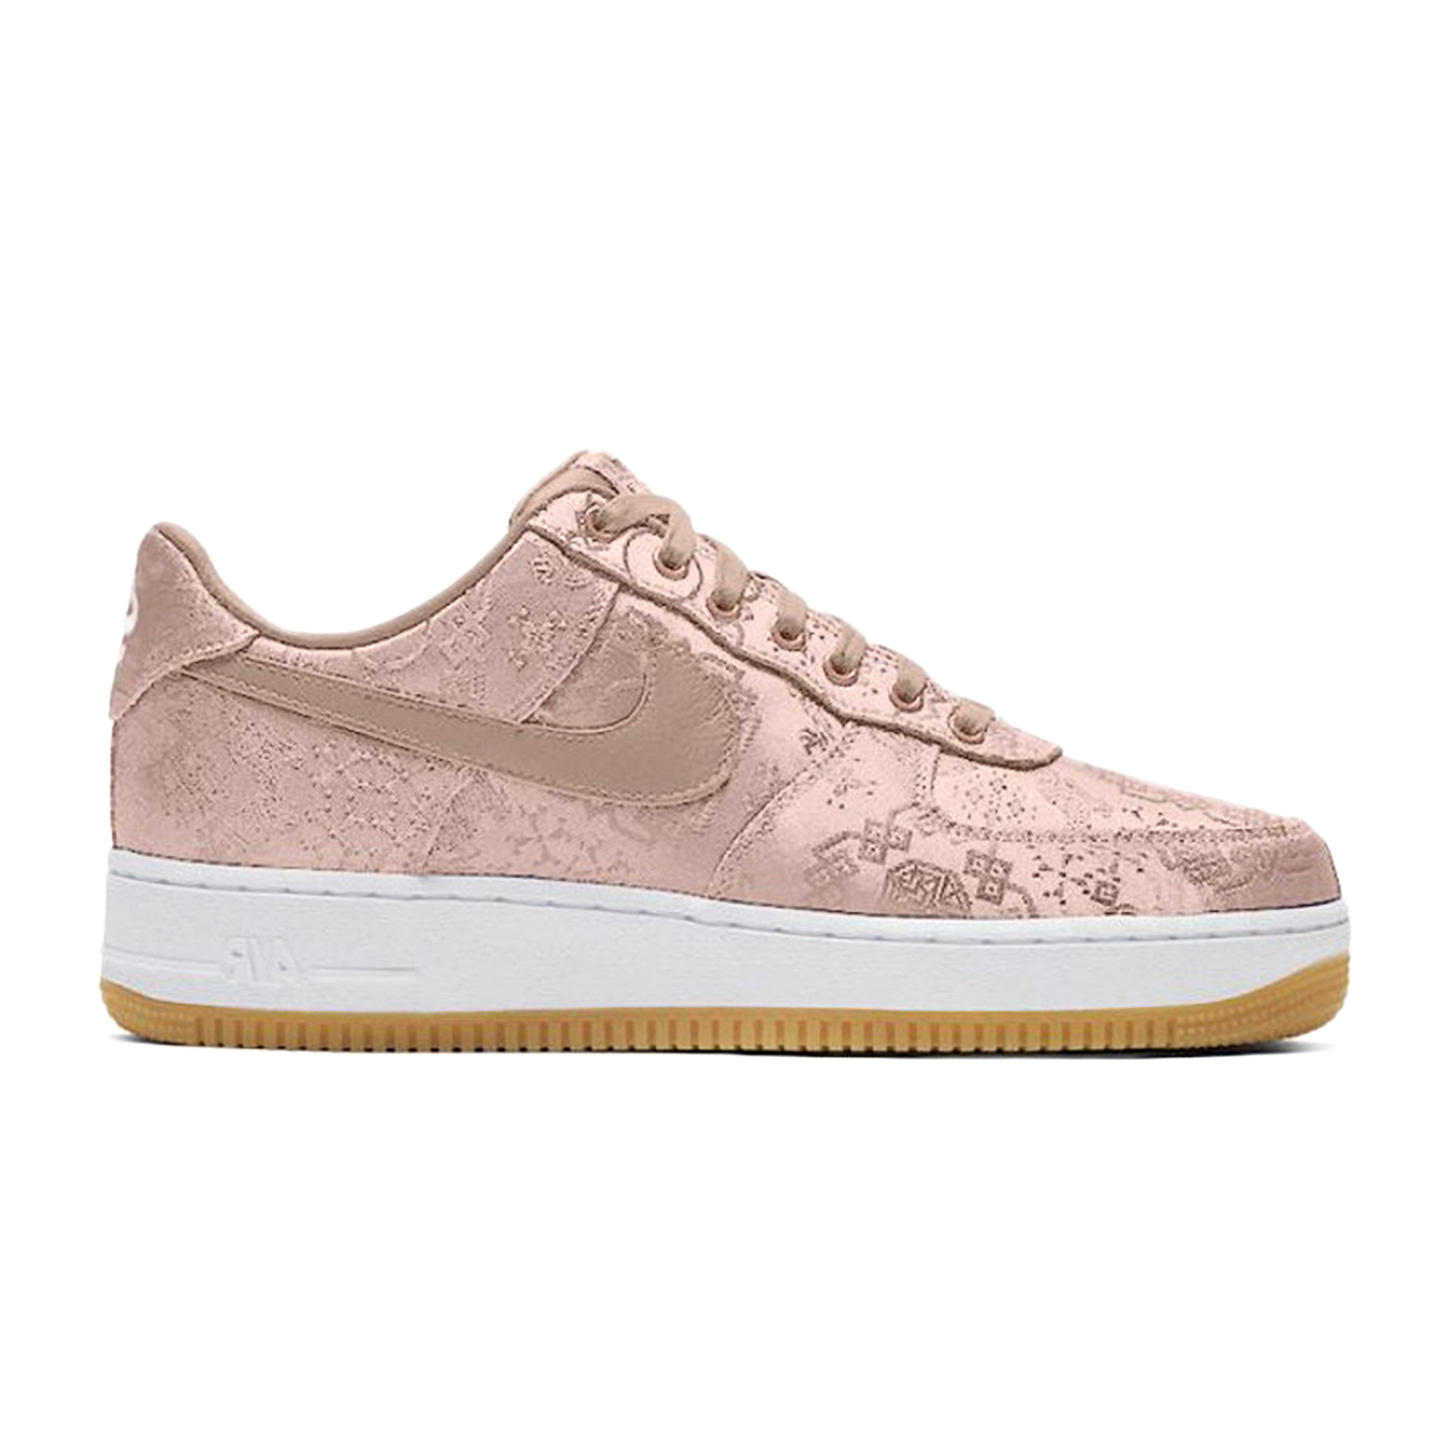 Nike-Air-Force-1-Low-Clot-Rose-Gold-Silk